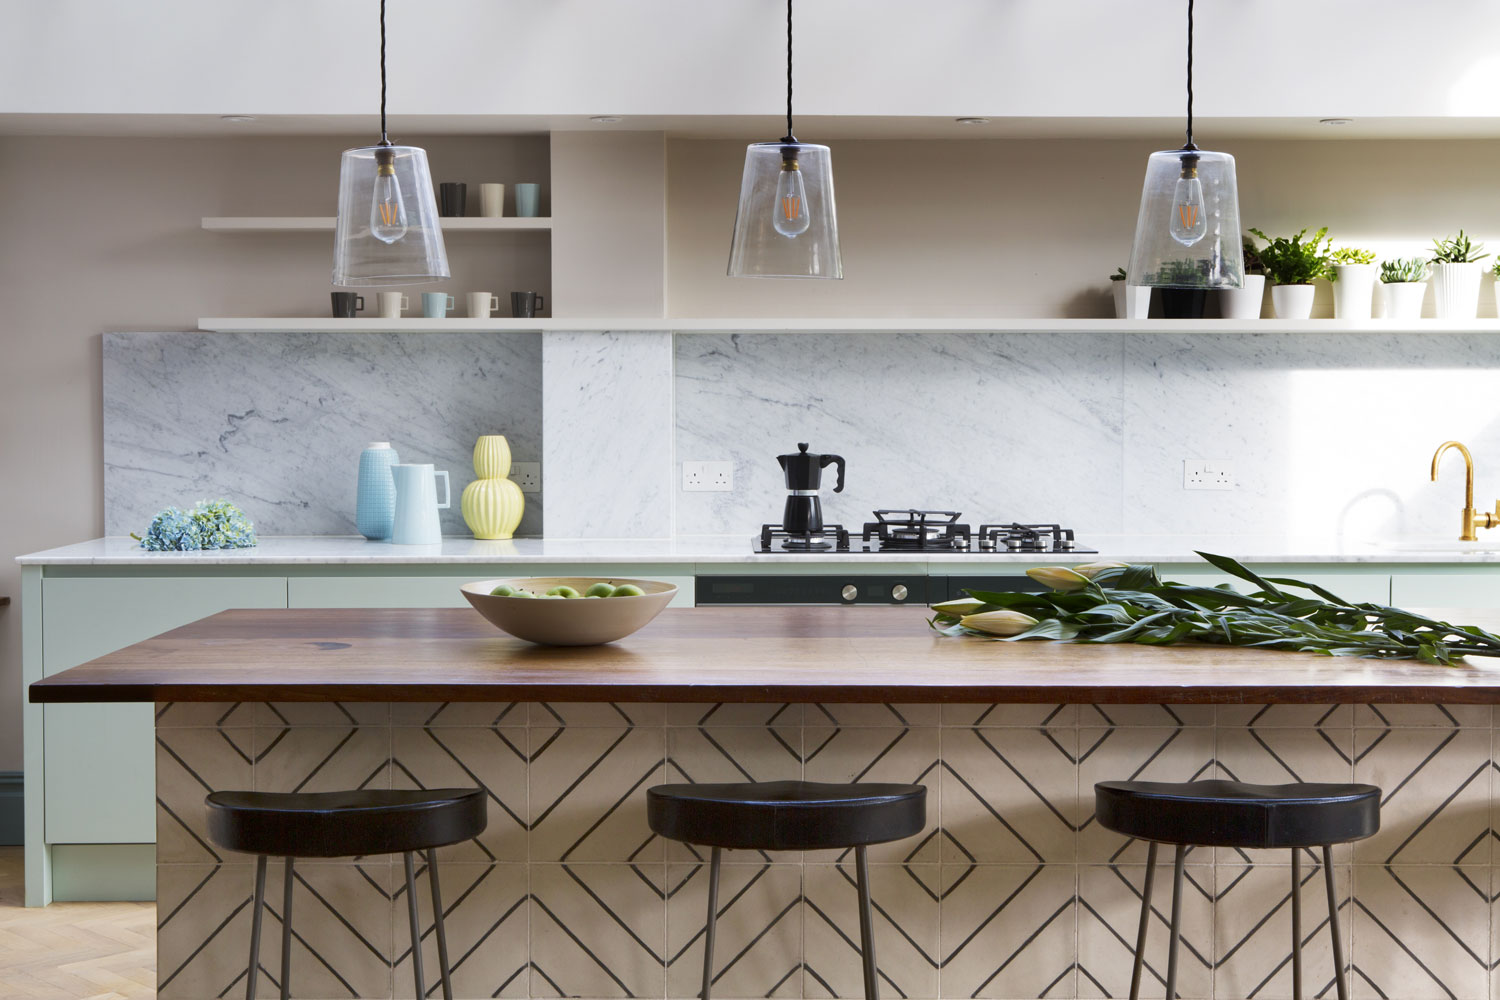 west & reid | bespoke kitchen design east dulwich